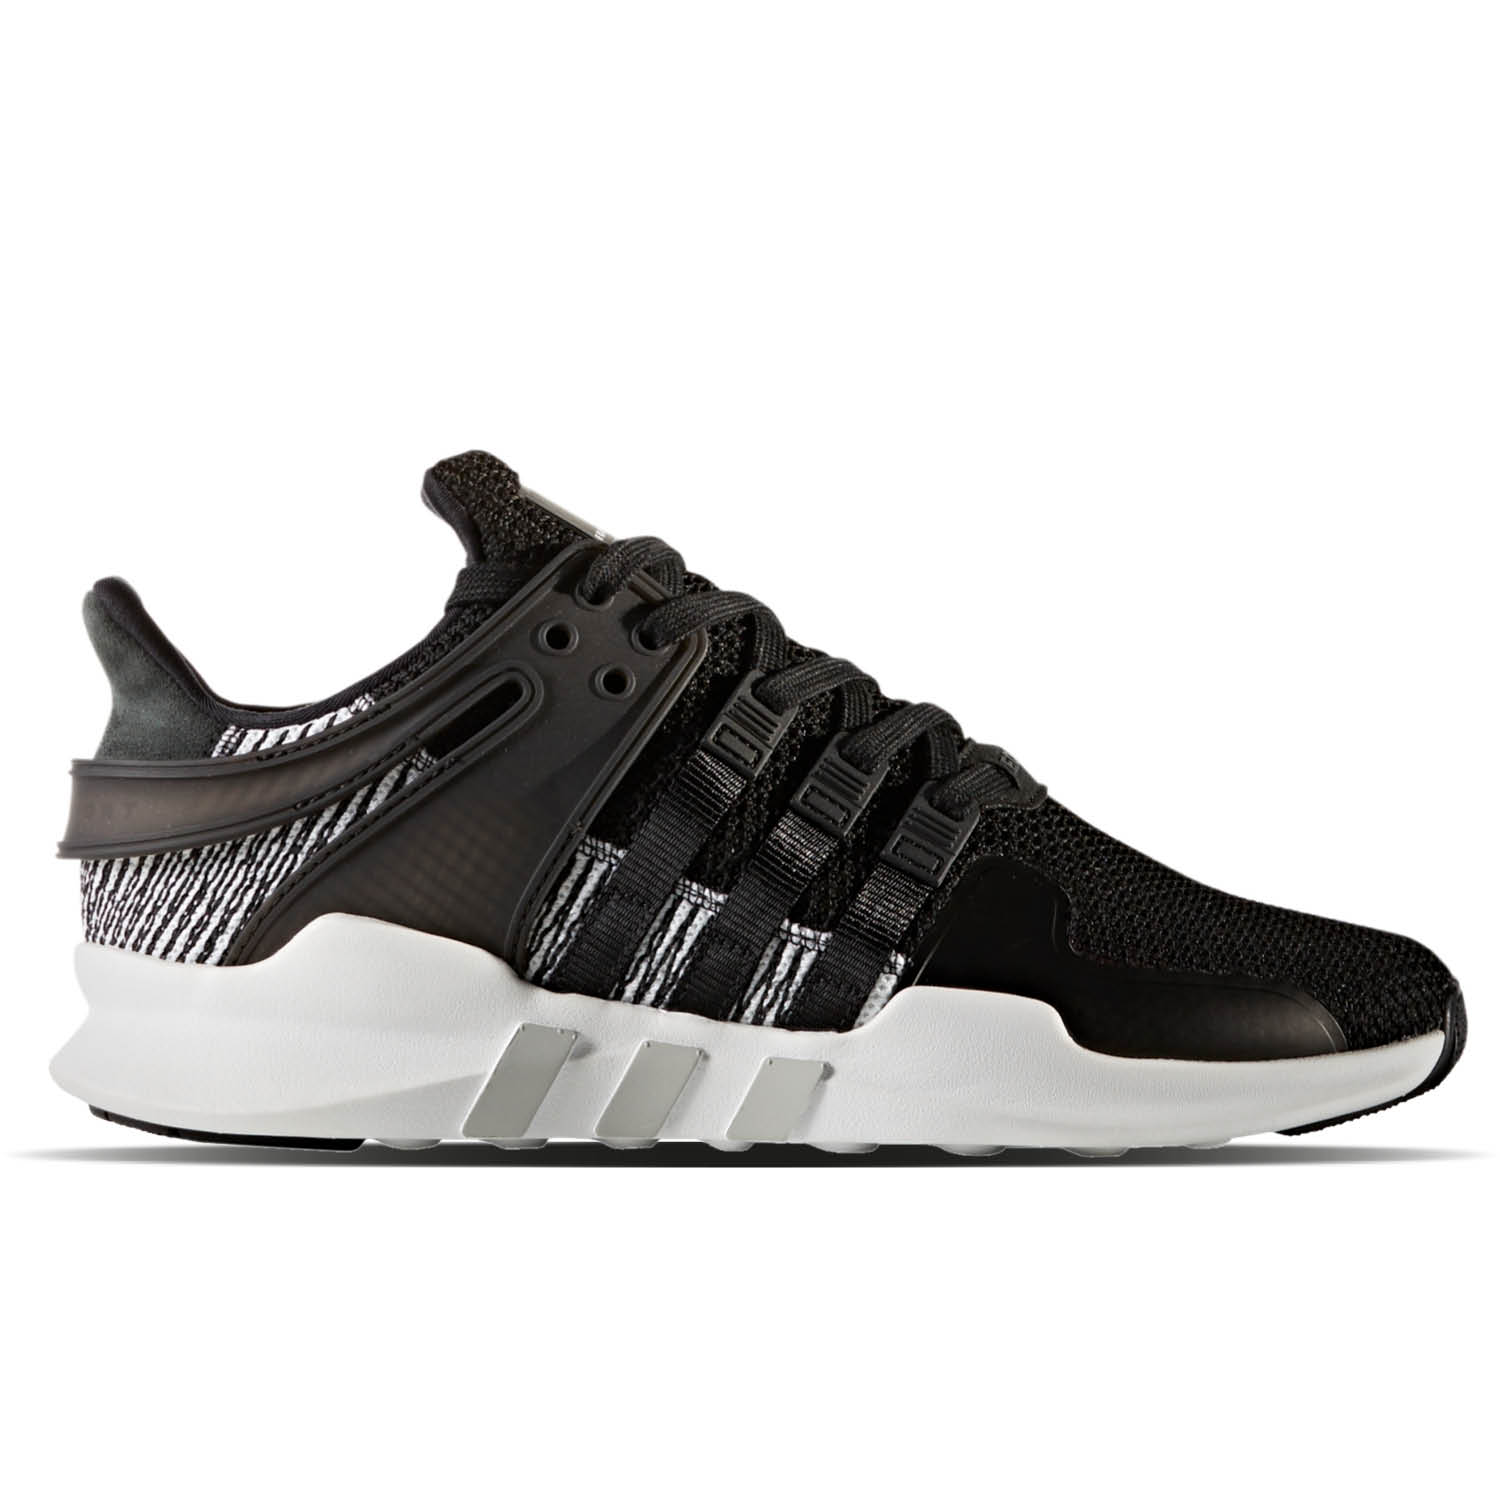 online store b6bd1 a23d4 ... BUTY MĘSKIE ADIDAS EQT SUPPORT ADV BY9585 ...